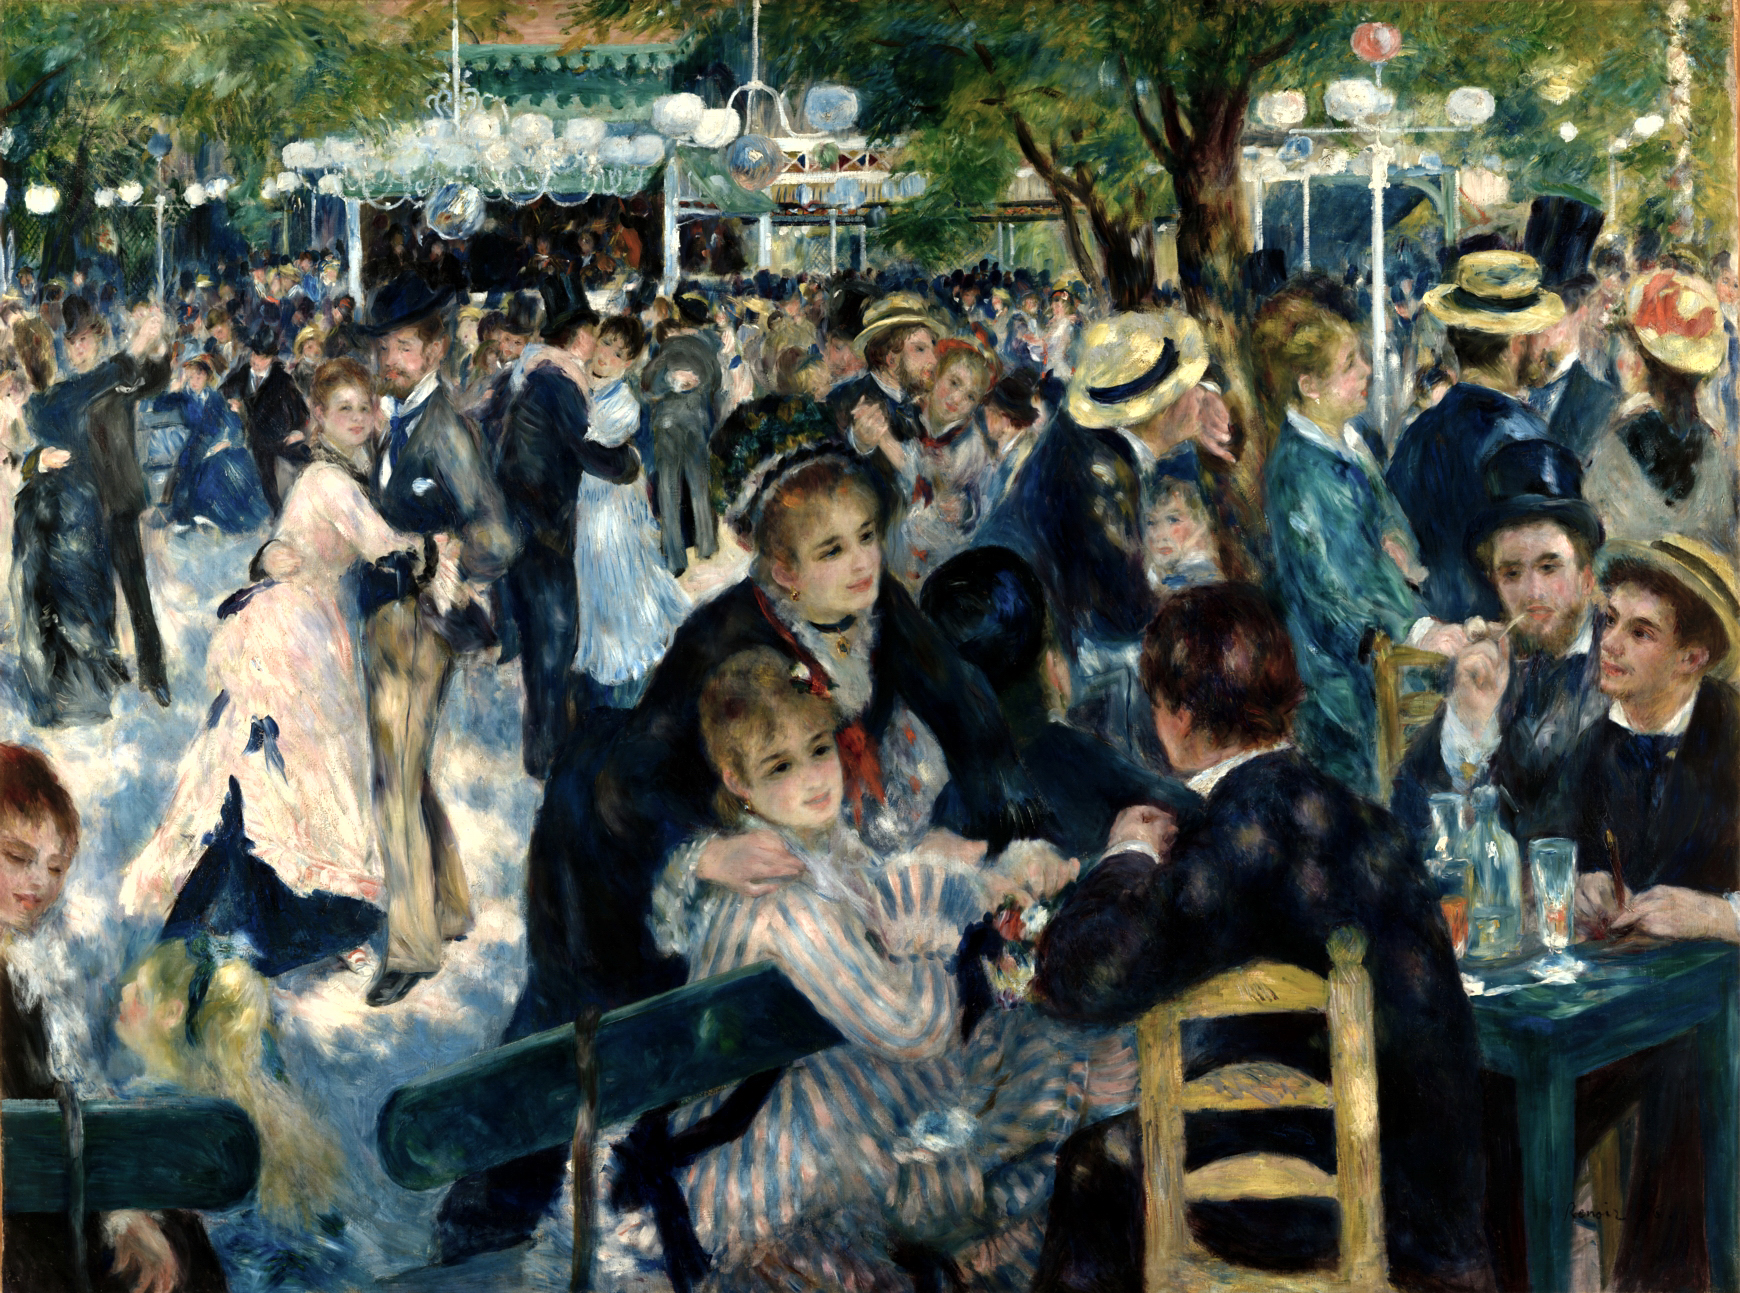 Pierre-Auguste Renoir,  Moulin de la Galette , 1876, oil on canvas